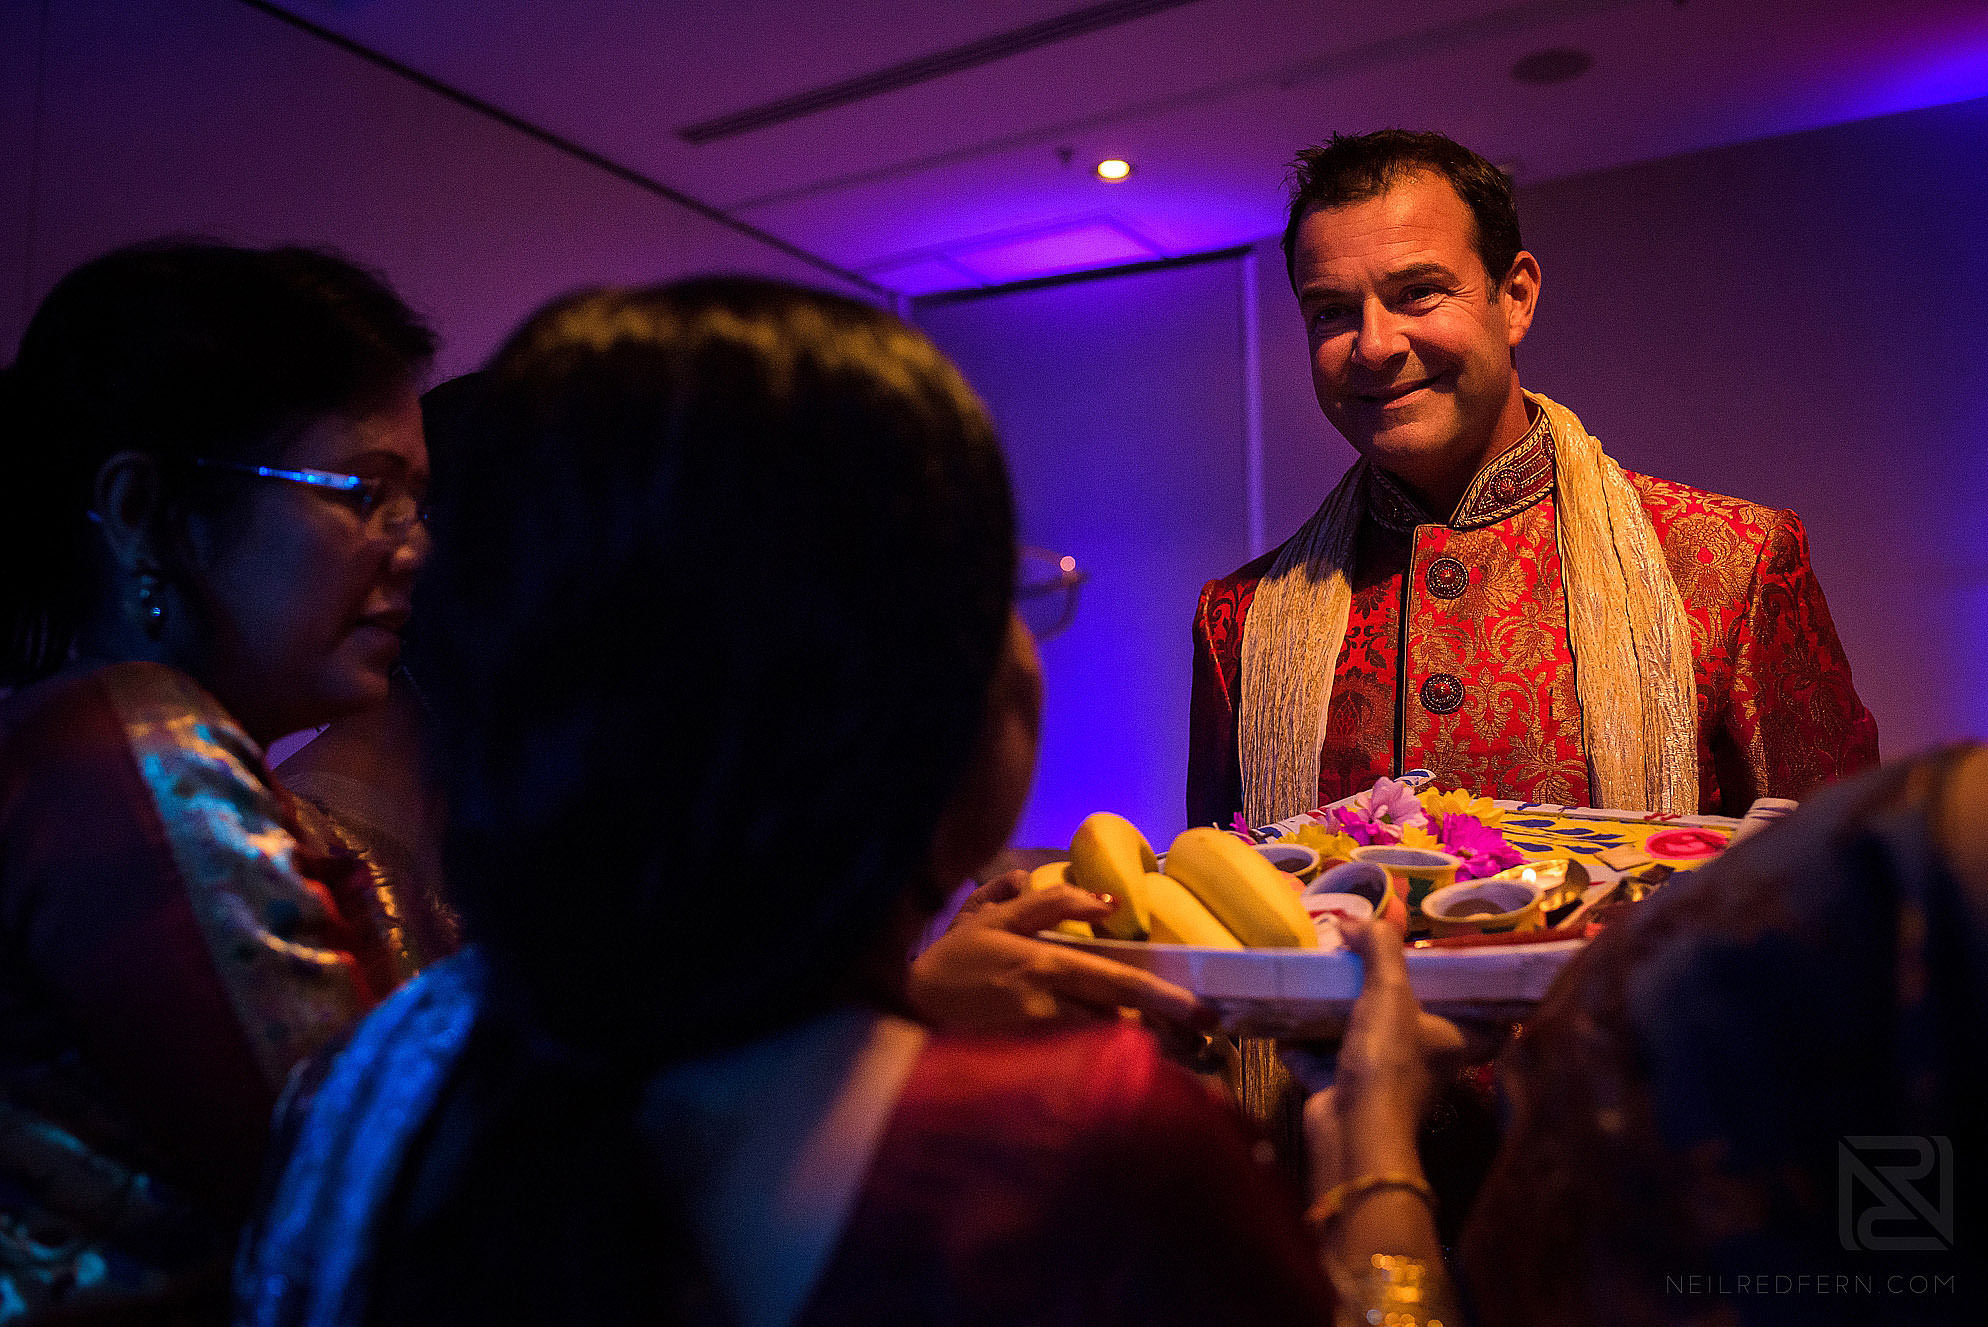 groom being offered food during wedding ceremony